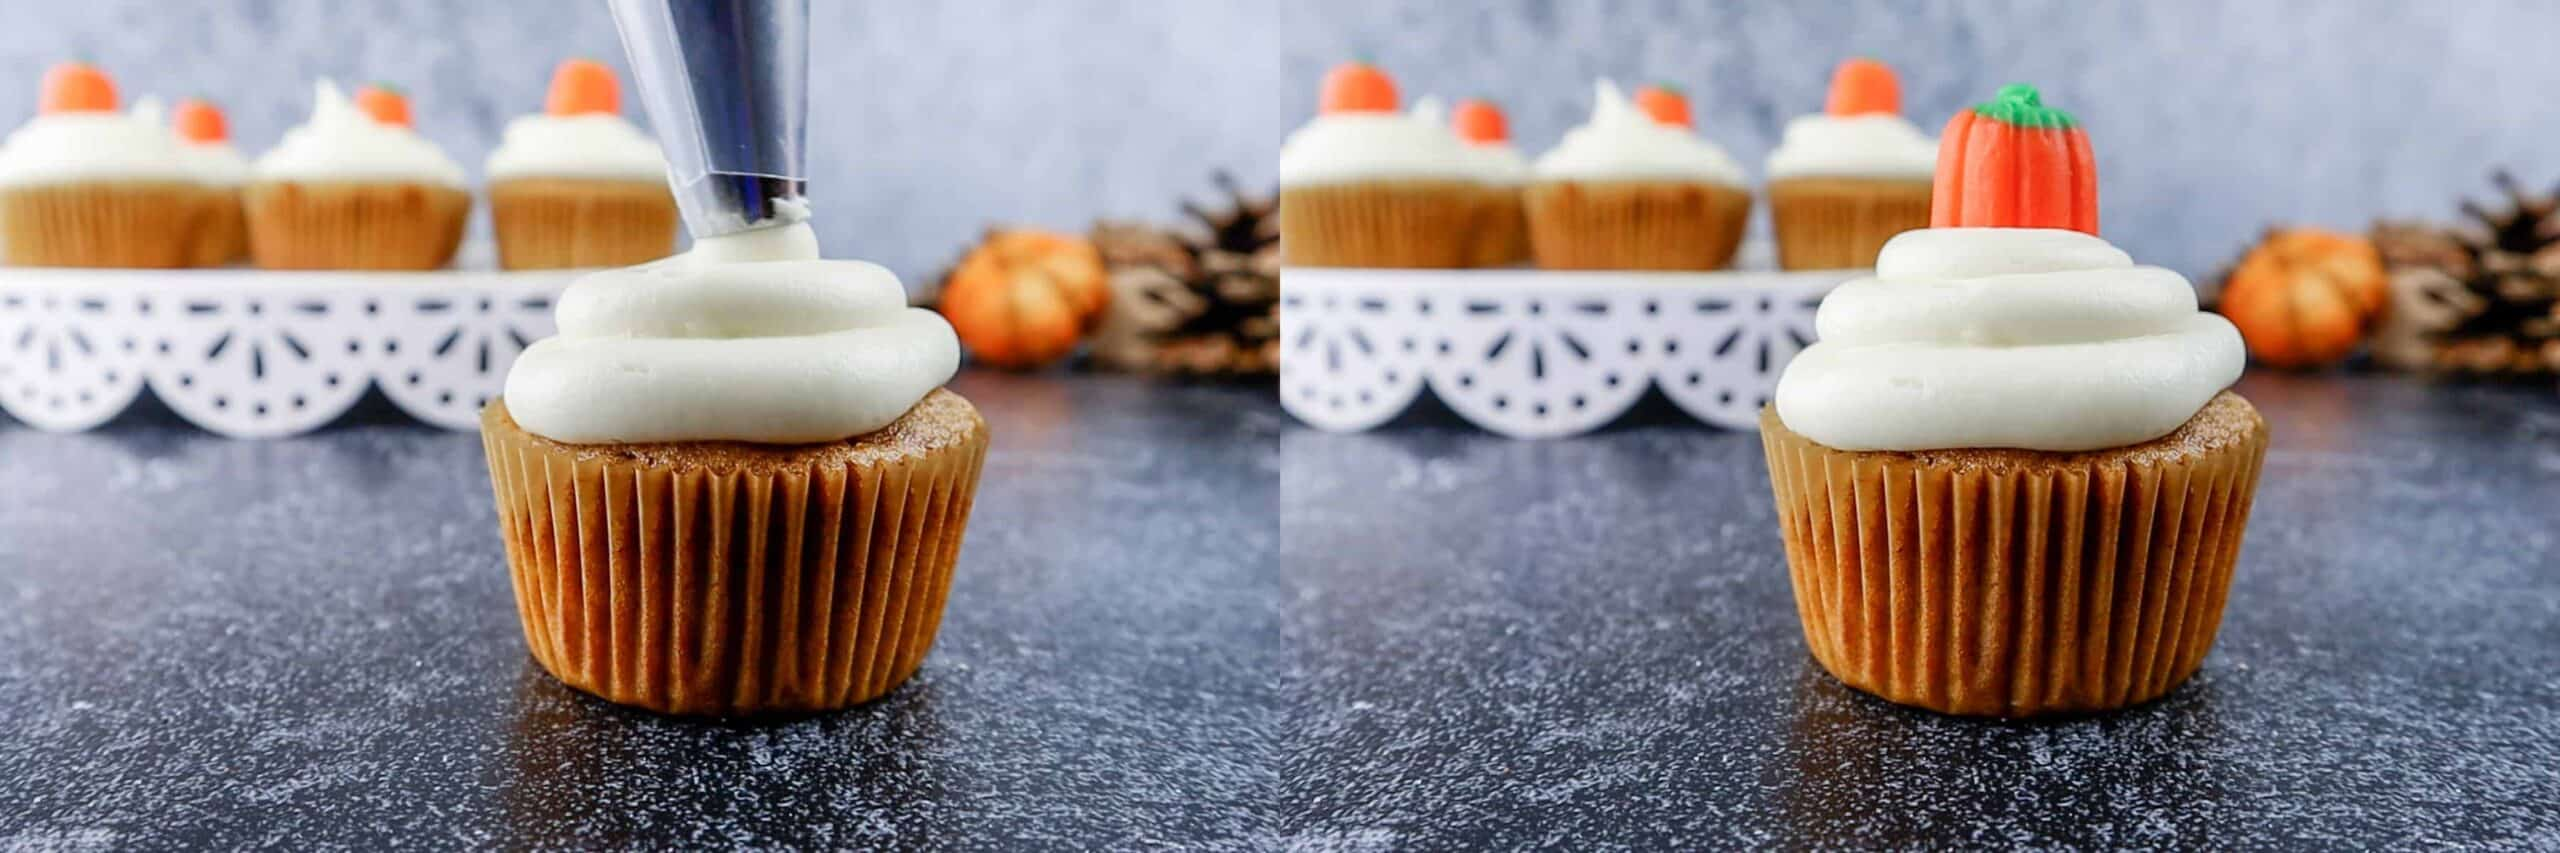 how to frost pumpkin cupcakes with cream cheese frosting